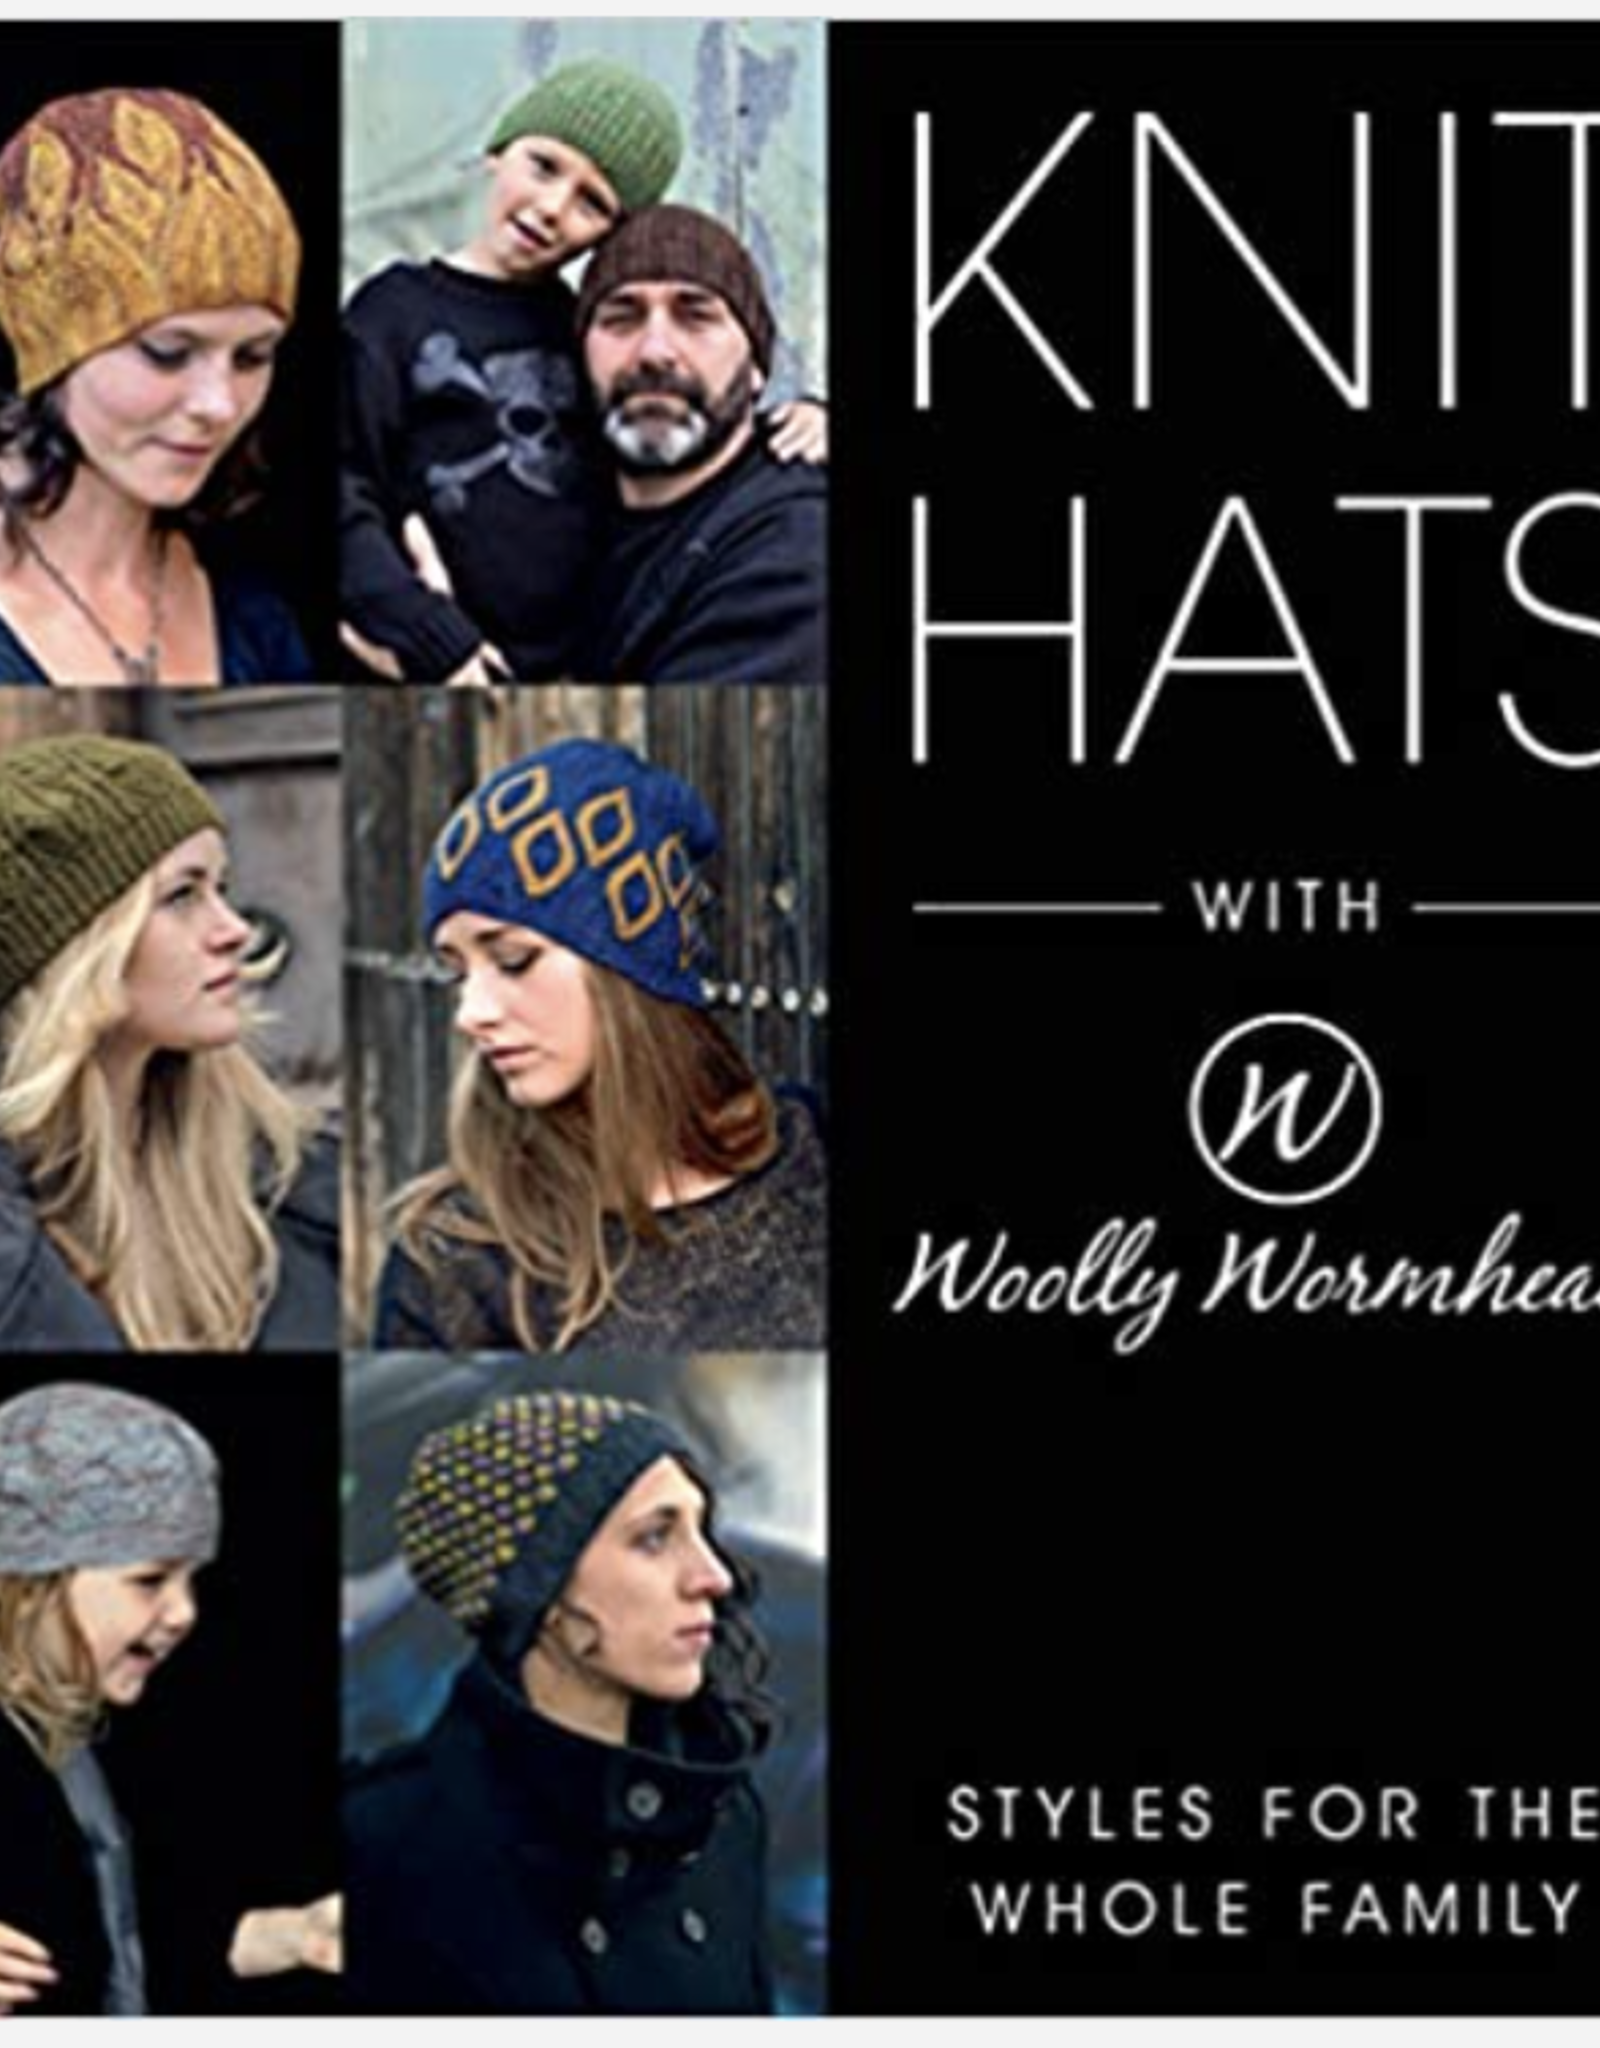 National Book Network Knit Hats with Wooly Wormhead -- Styles for the Whole Family